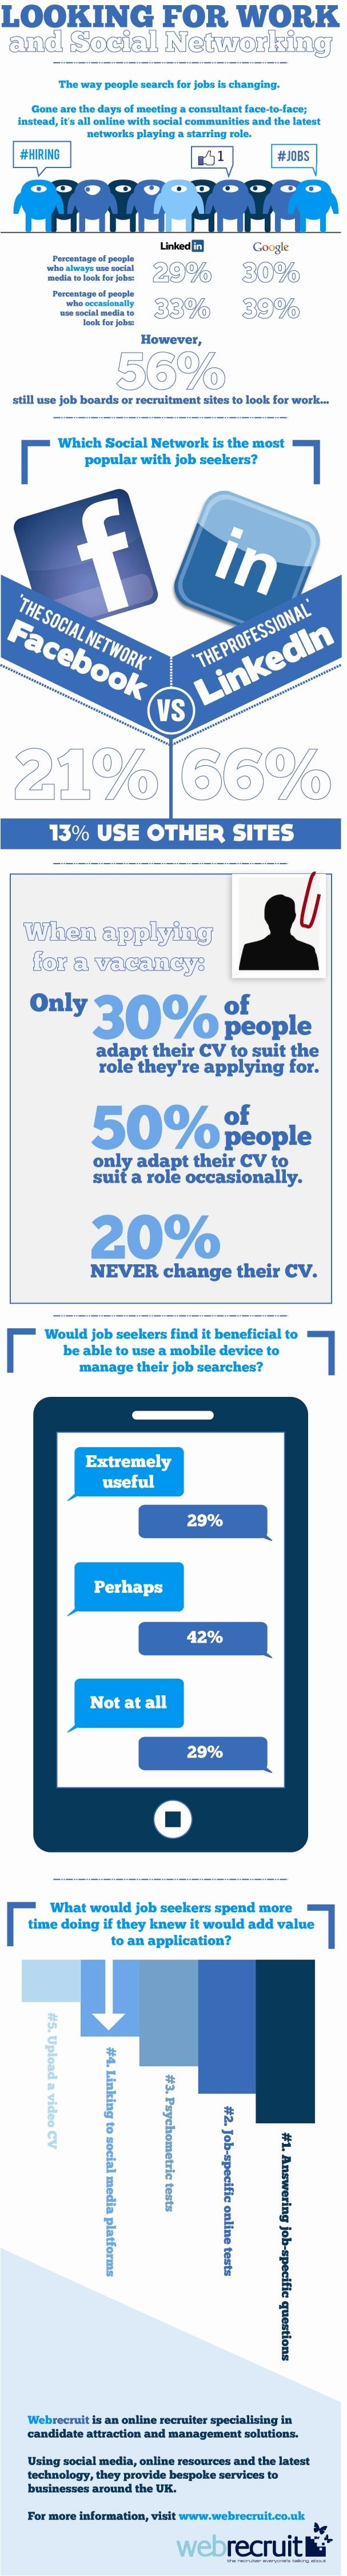 Who's using #socialmedia to find a job? #infographic